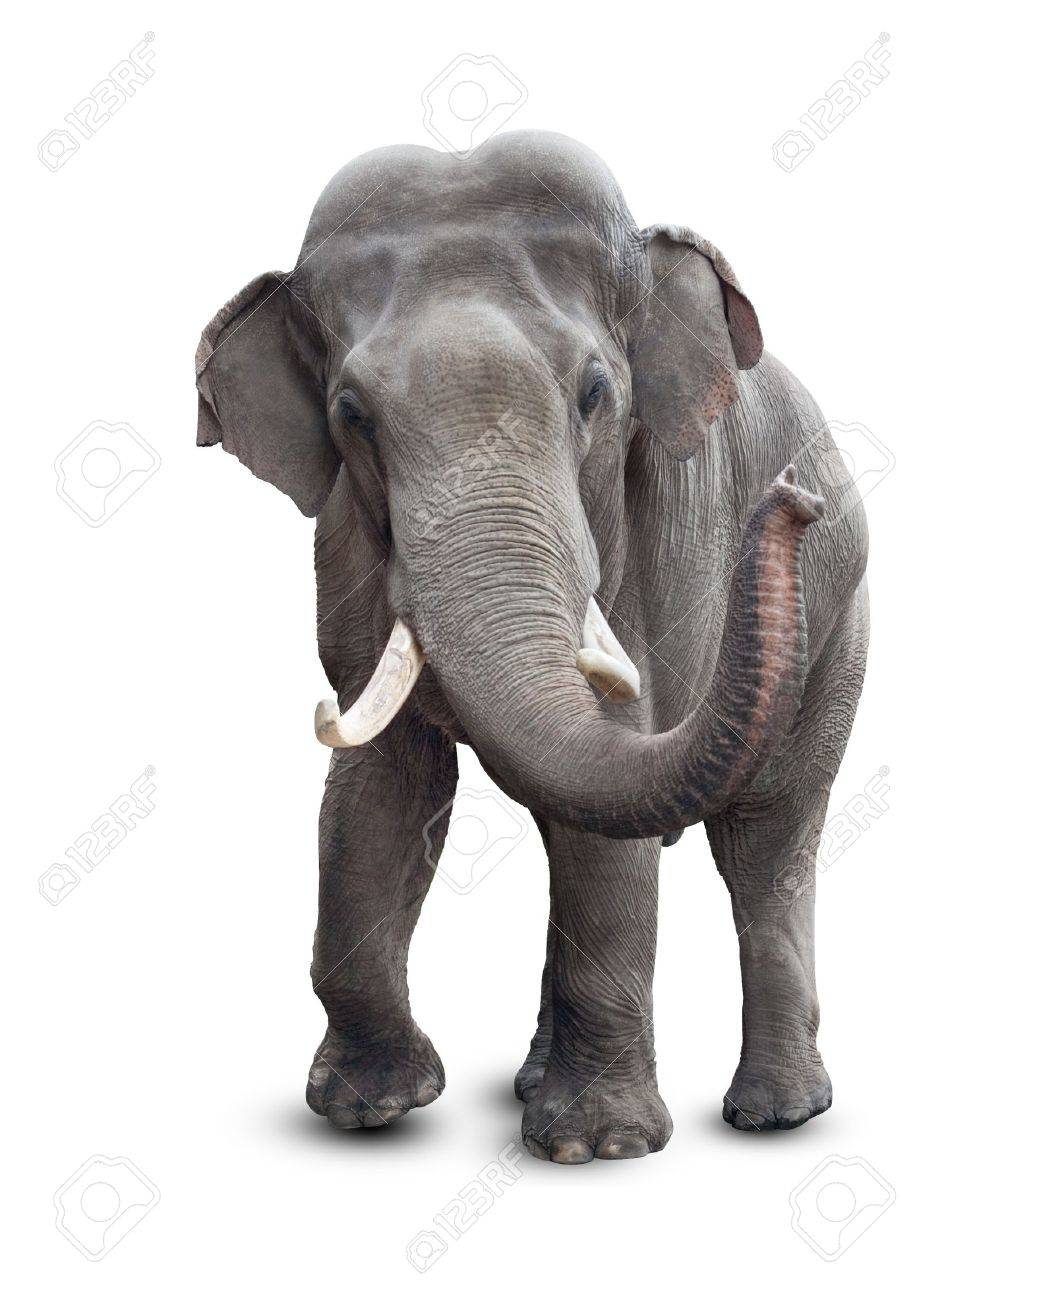 elephant front stock photos royalty free elephant front images